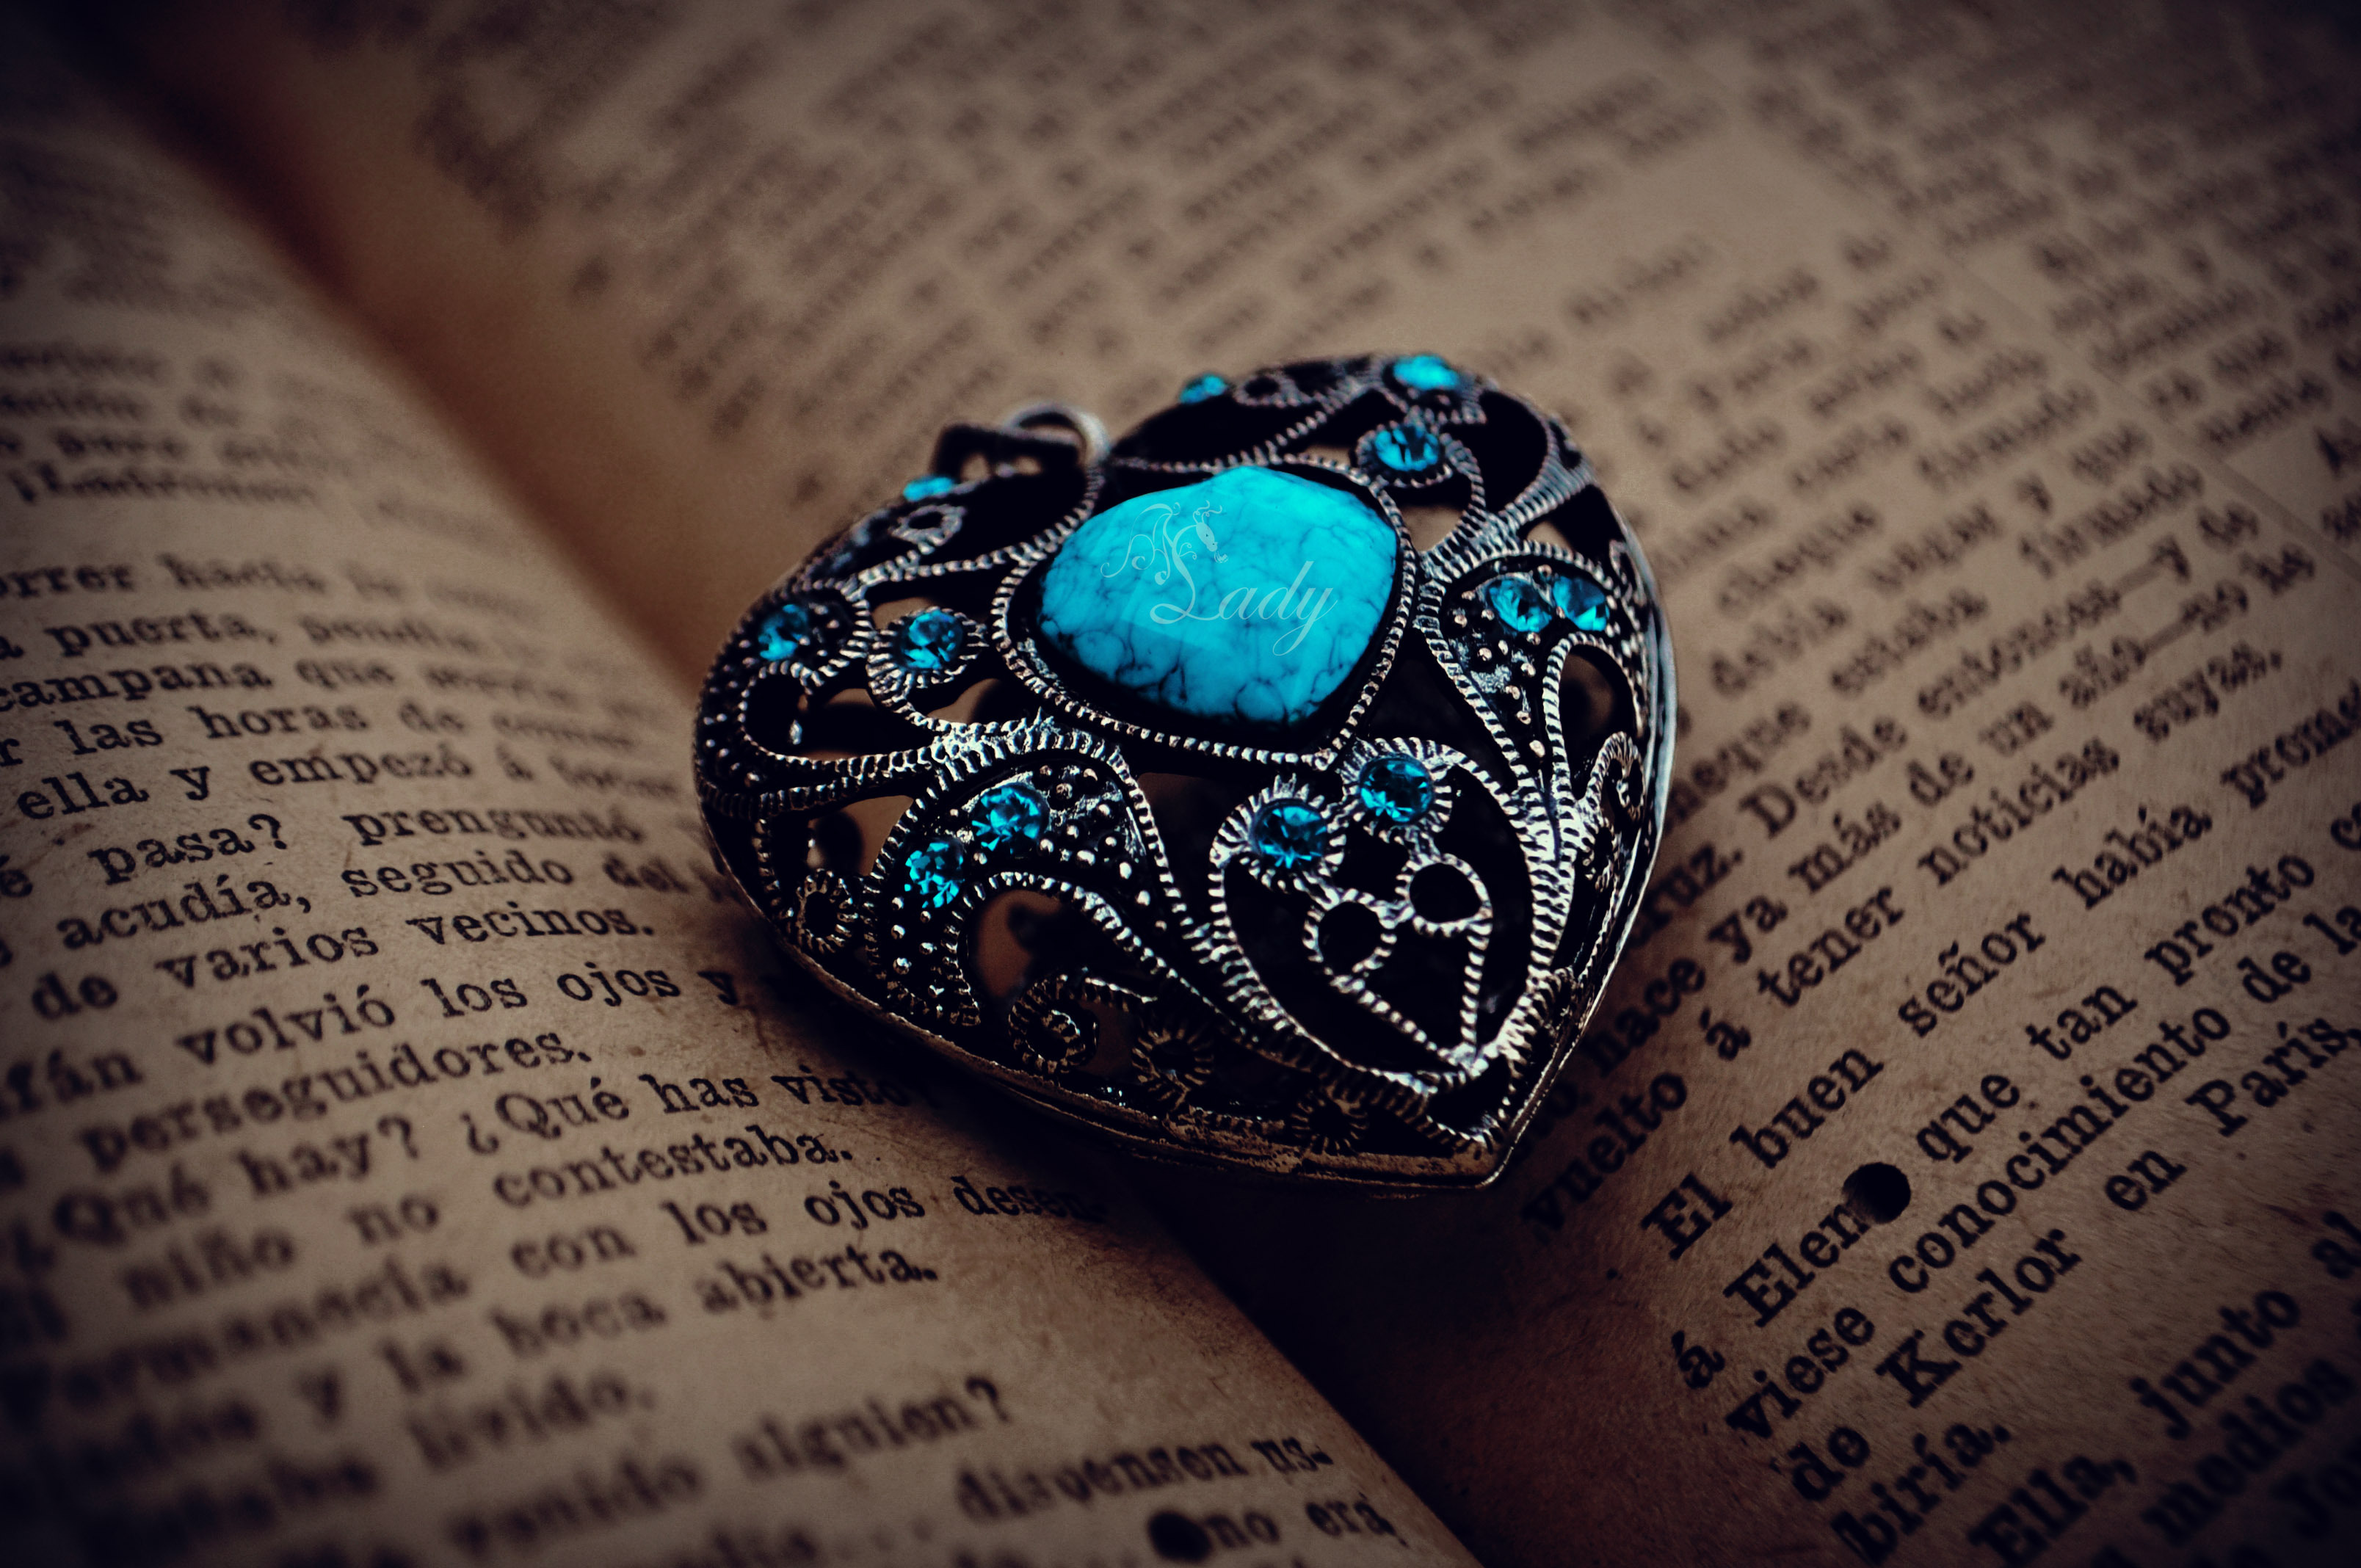 Turquoise Brick Wallpaper 86 Jewelry Hd Wallpapers Background Images Wallpaper Abyss